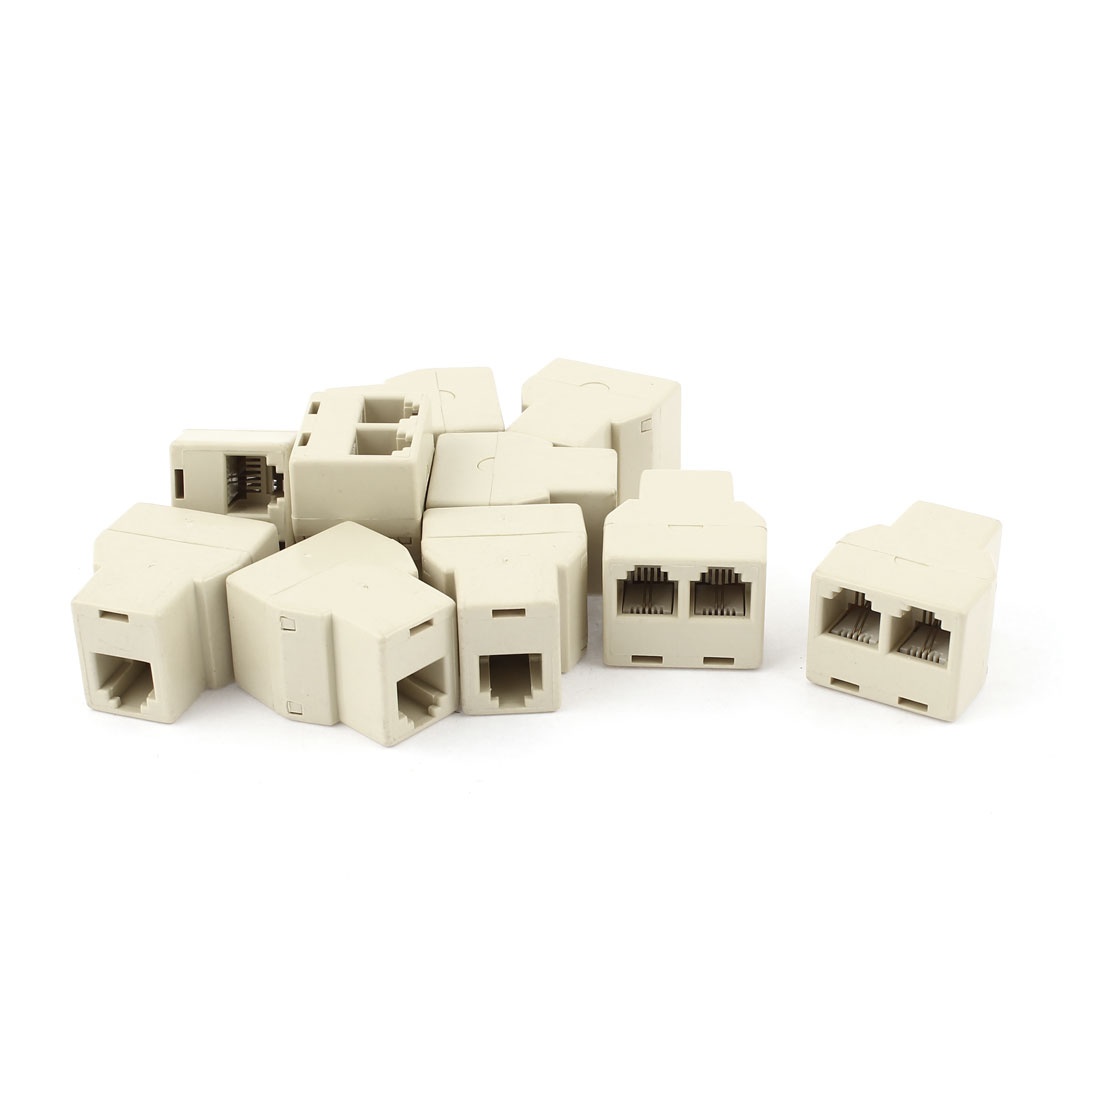 10 Pcs RJ11 6P2C Female to 2 Female Telephone Modem ADSL Splitter Adapter Beige